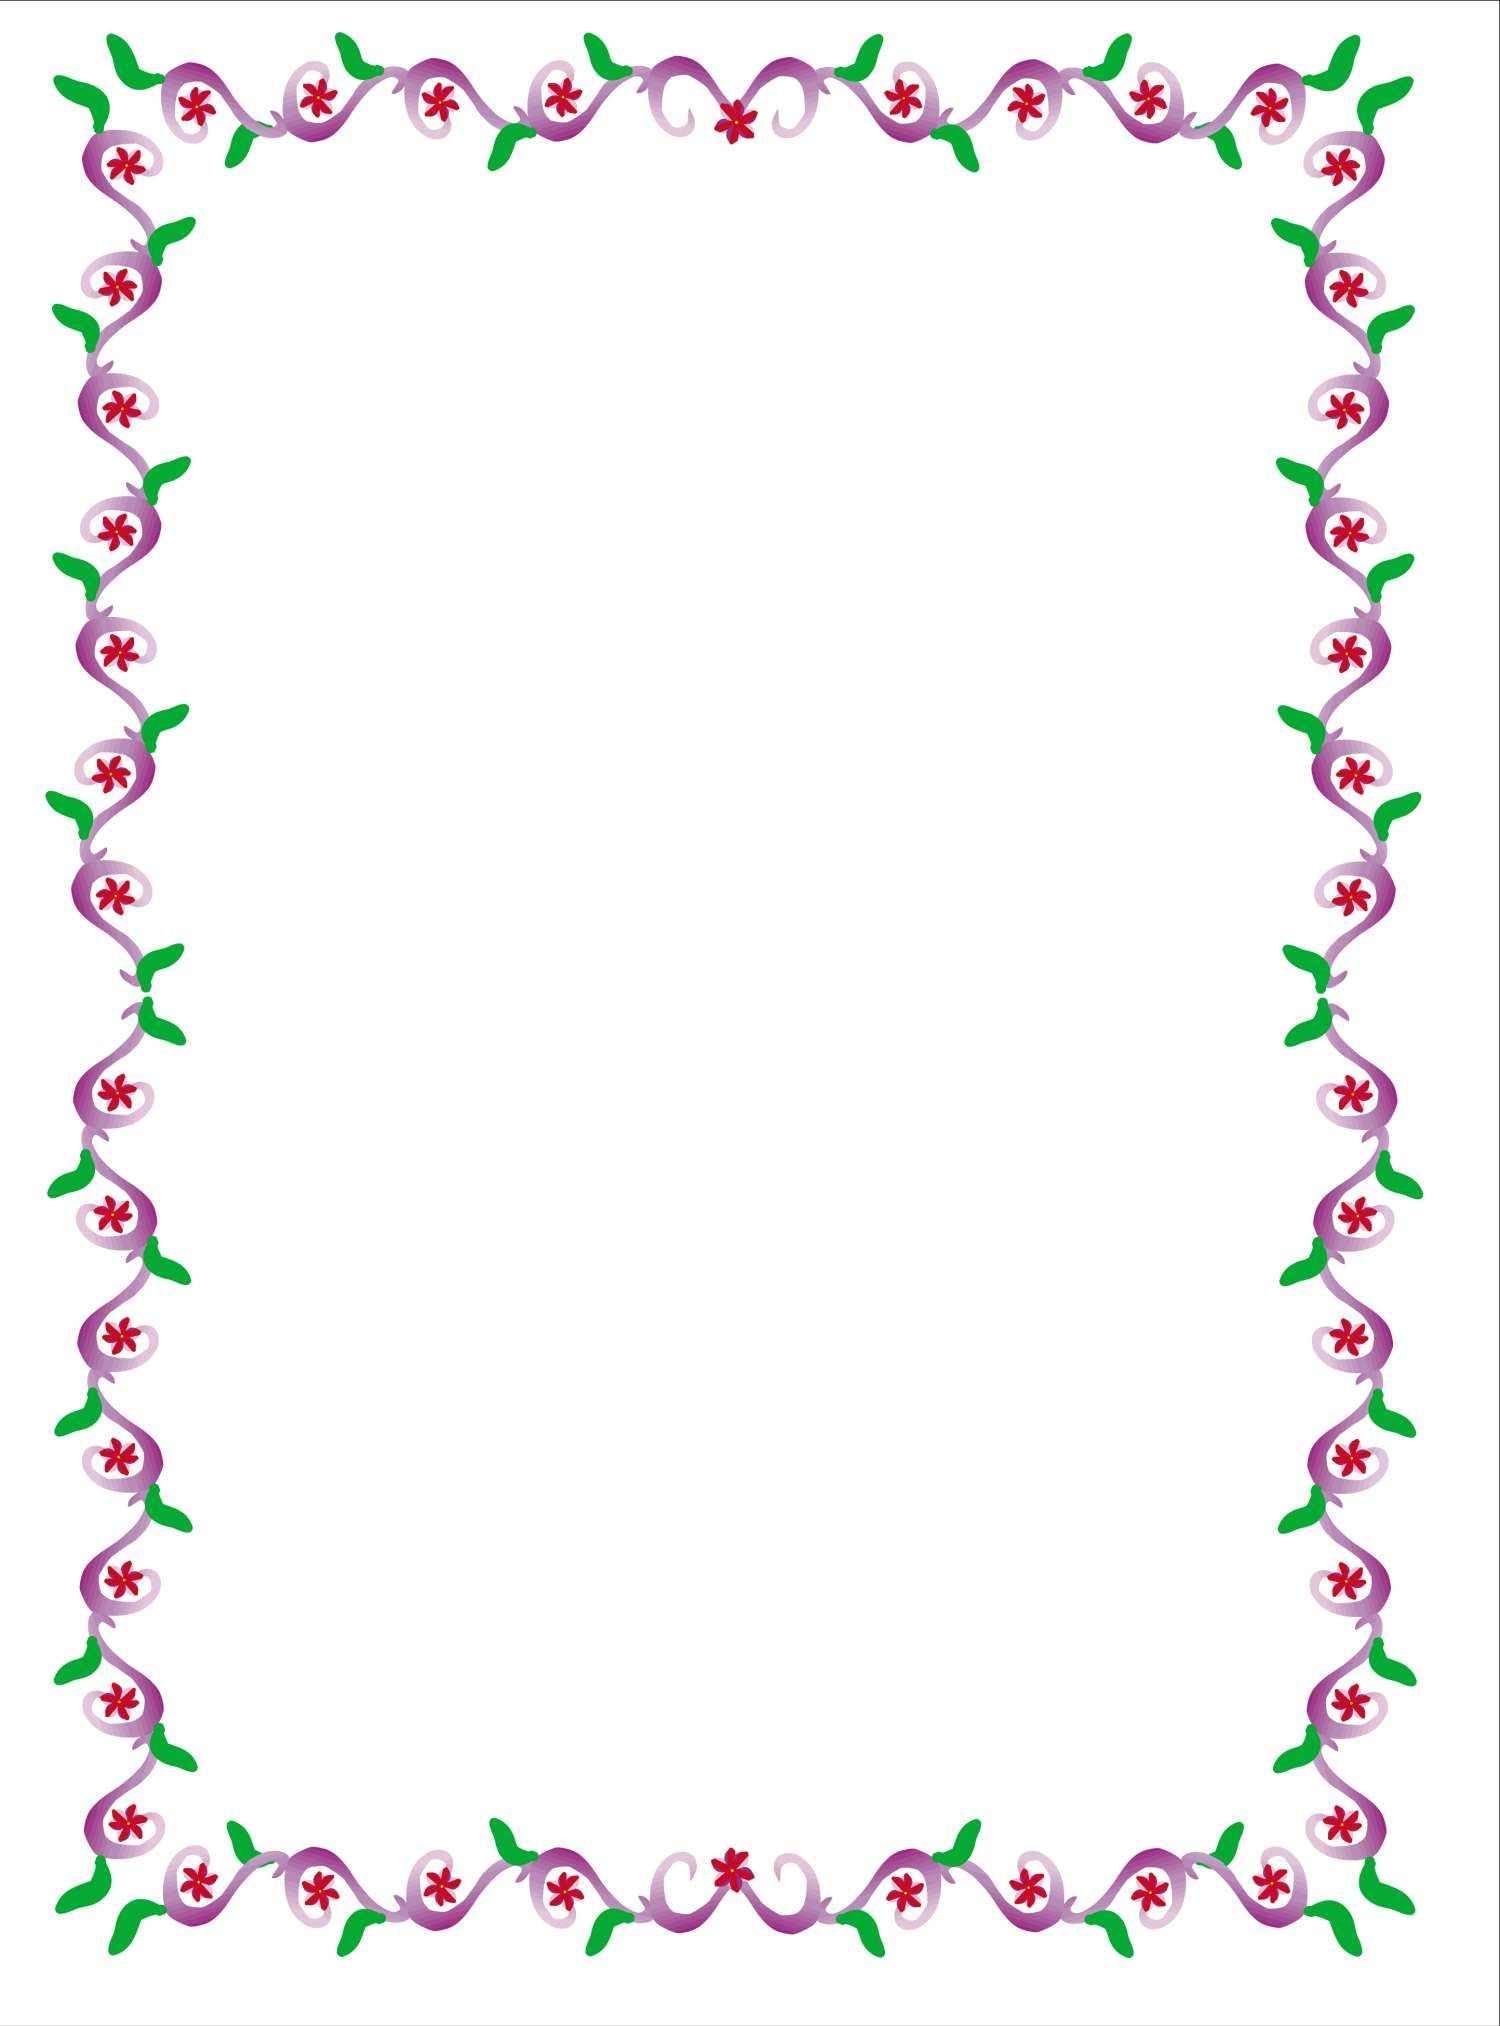 Cute Bordered Pastel Flower Wallpaper Pin By I T On Borders Frames Flowers Pinterest